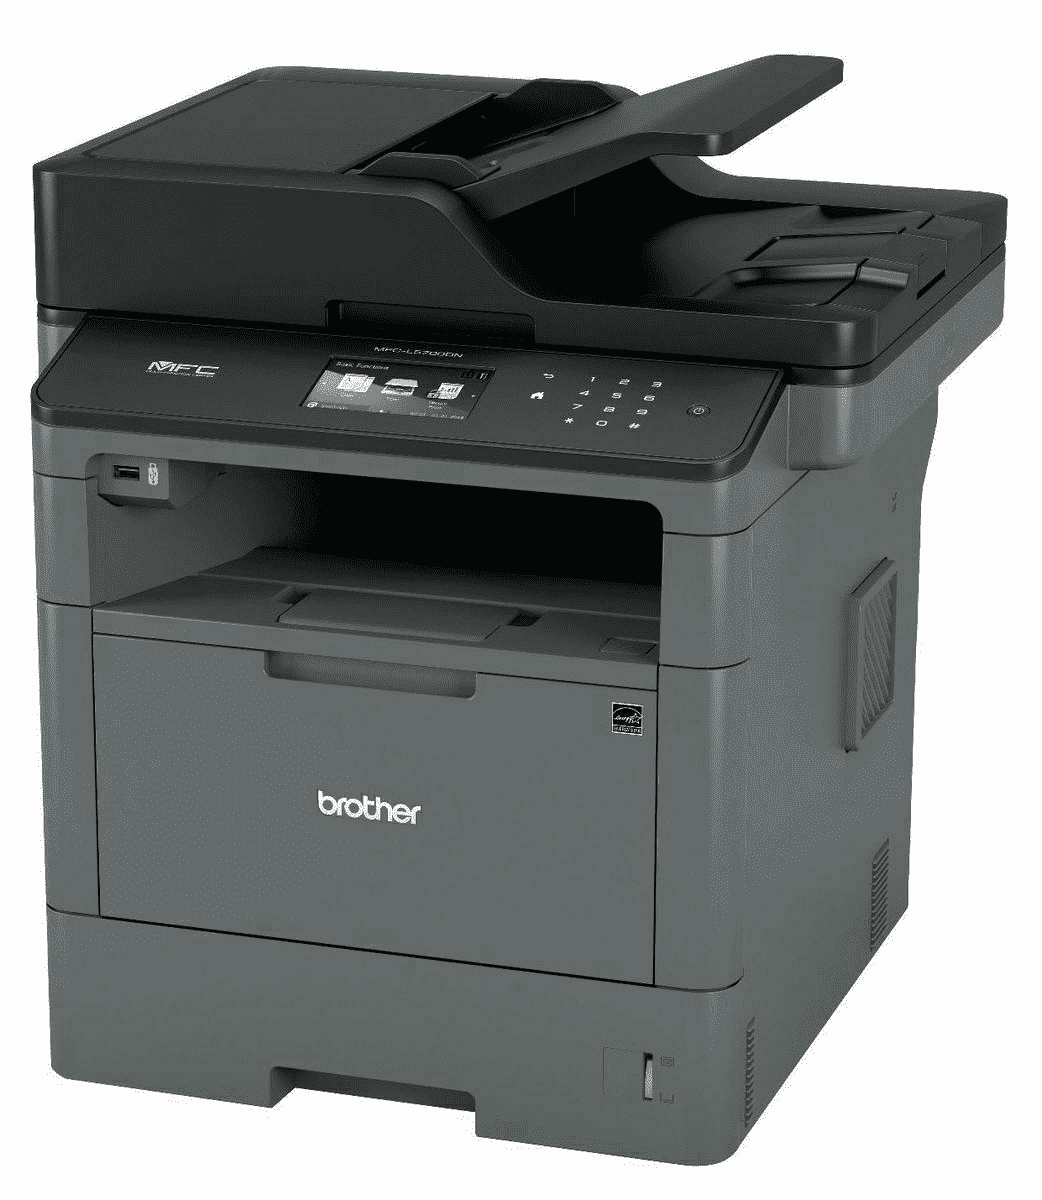 Brother MFC-L5700DN Image